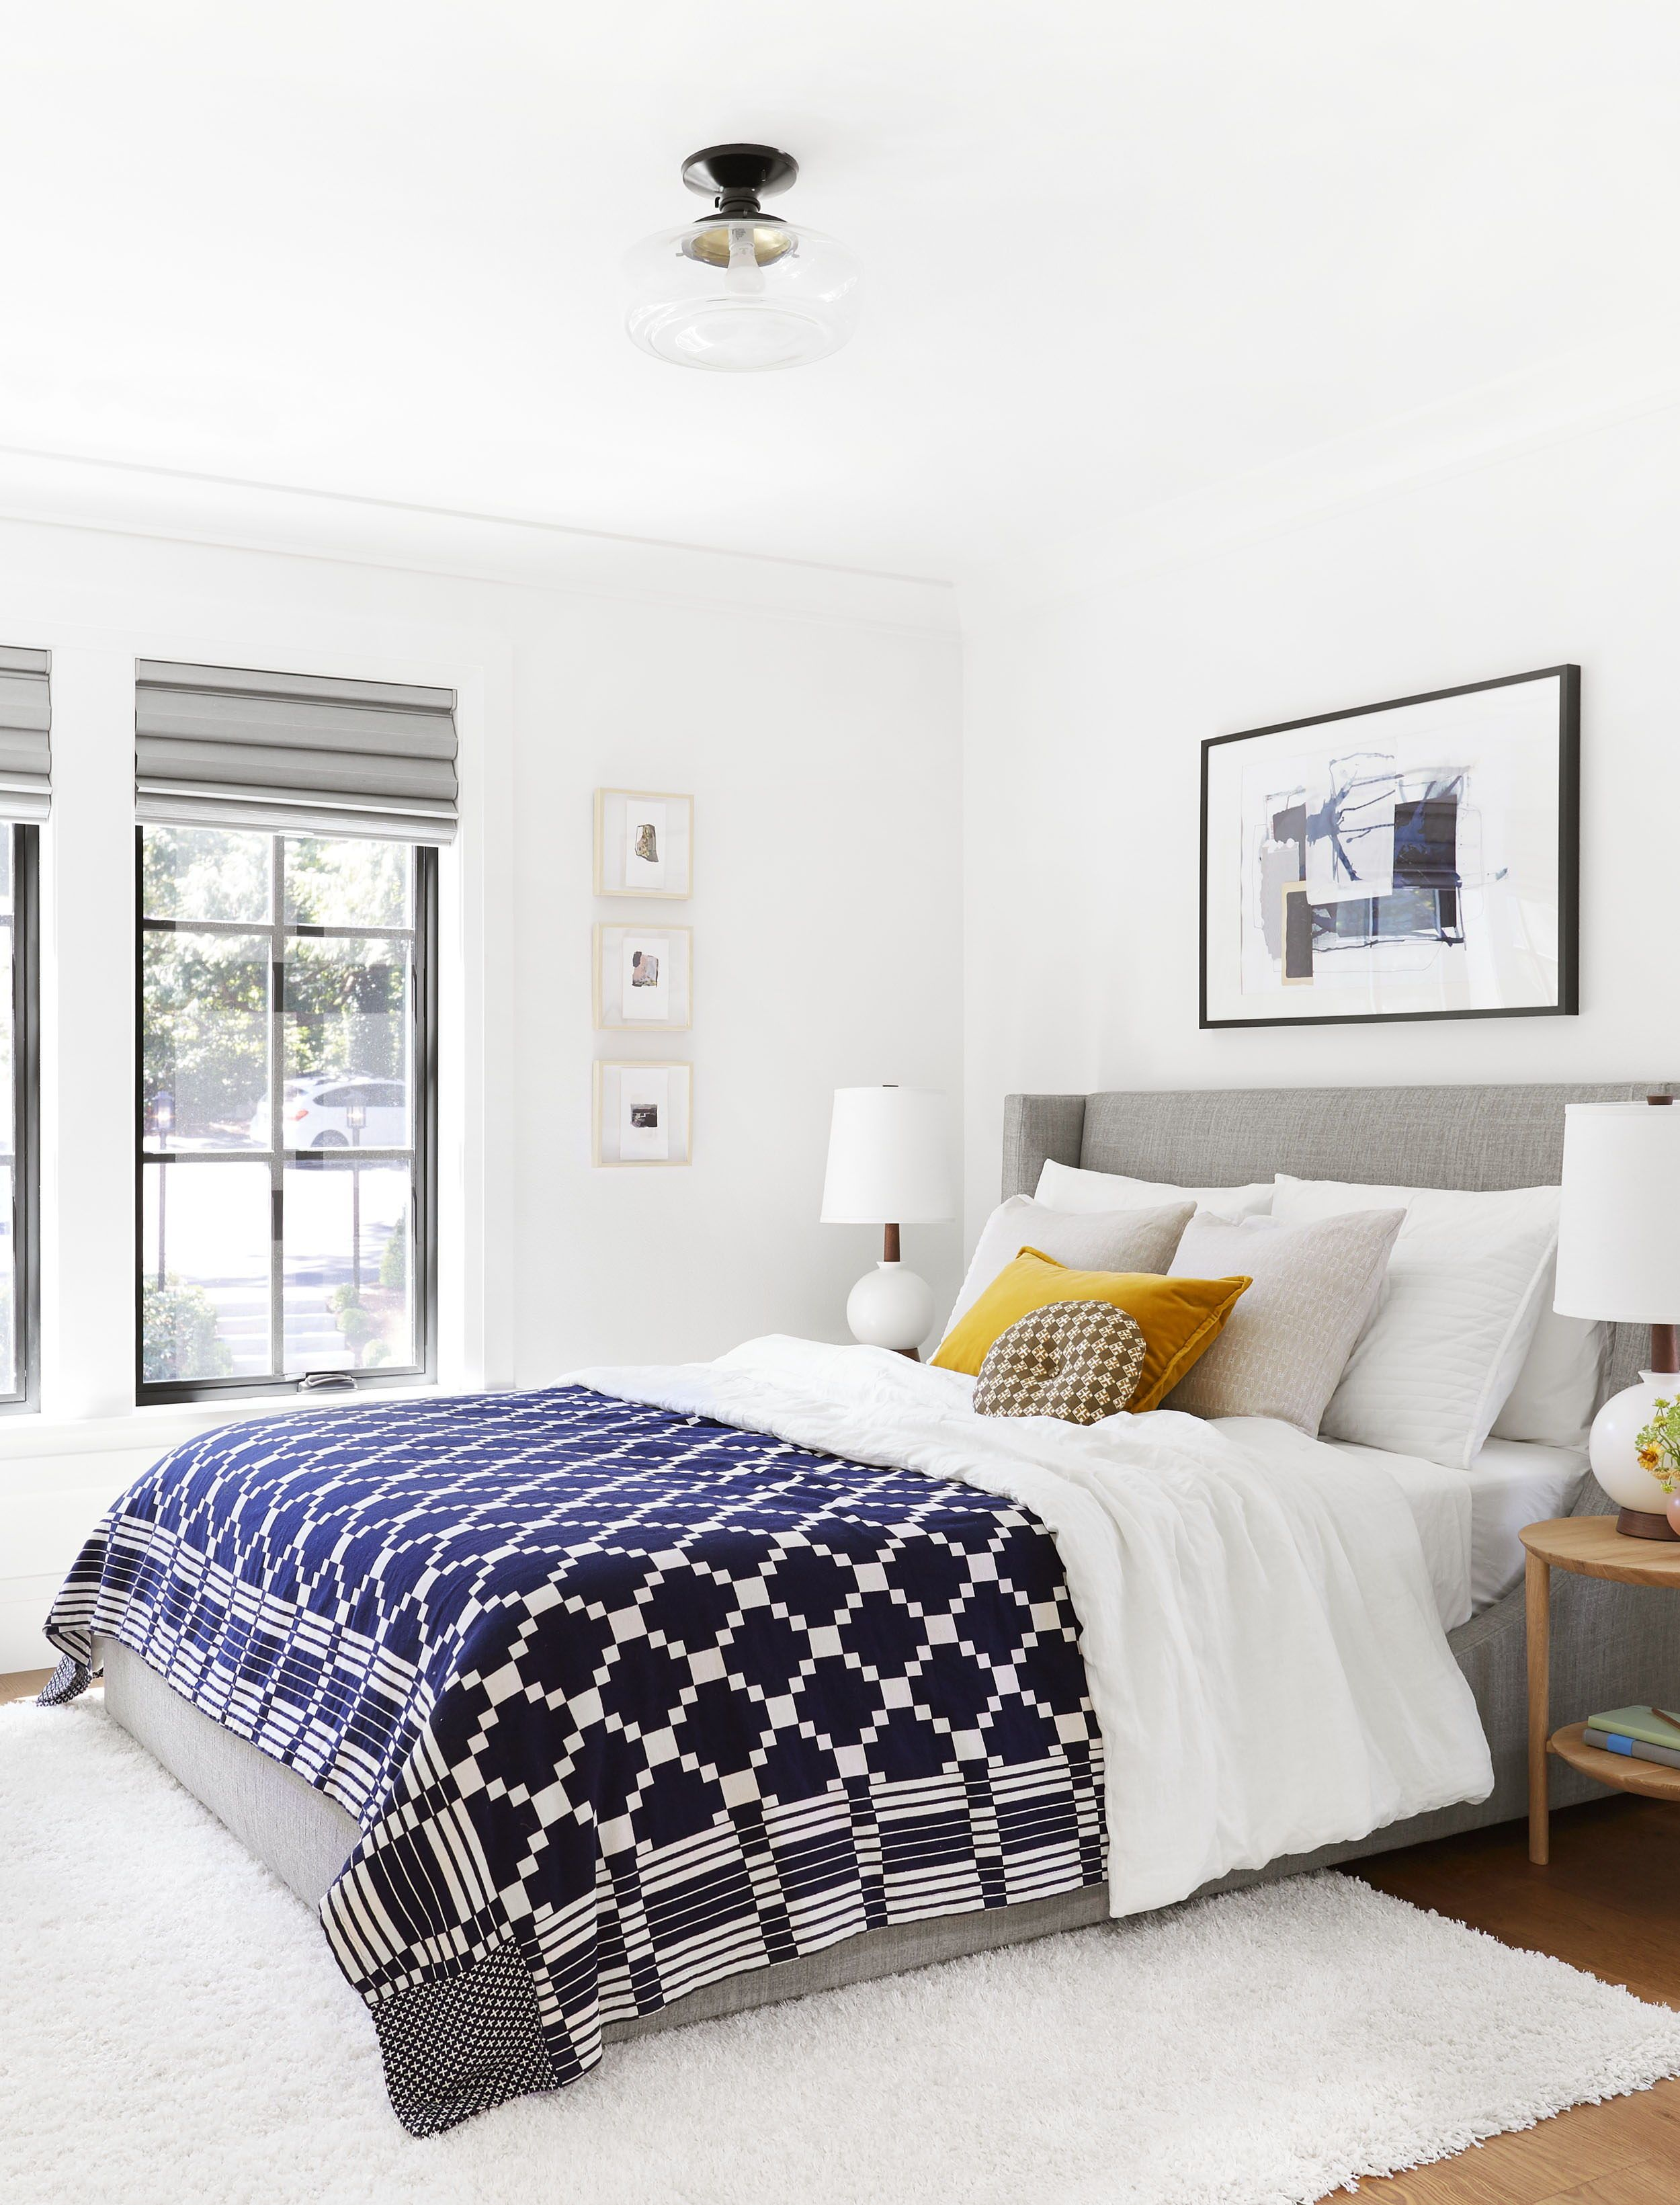 14 Rules To Follow To Design Style The Perfect Bedroom Home Decor Bedroom Perfect Bedroom Emily Henderson Bedroom